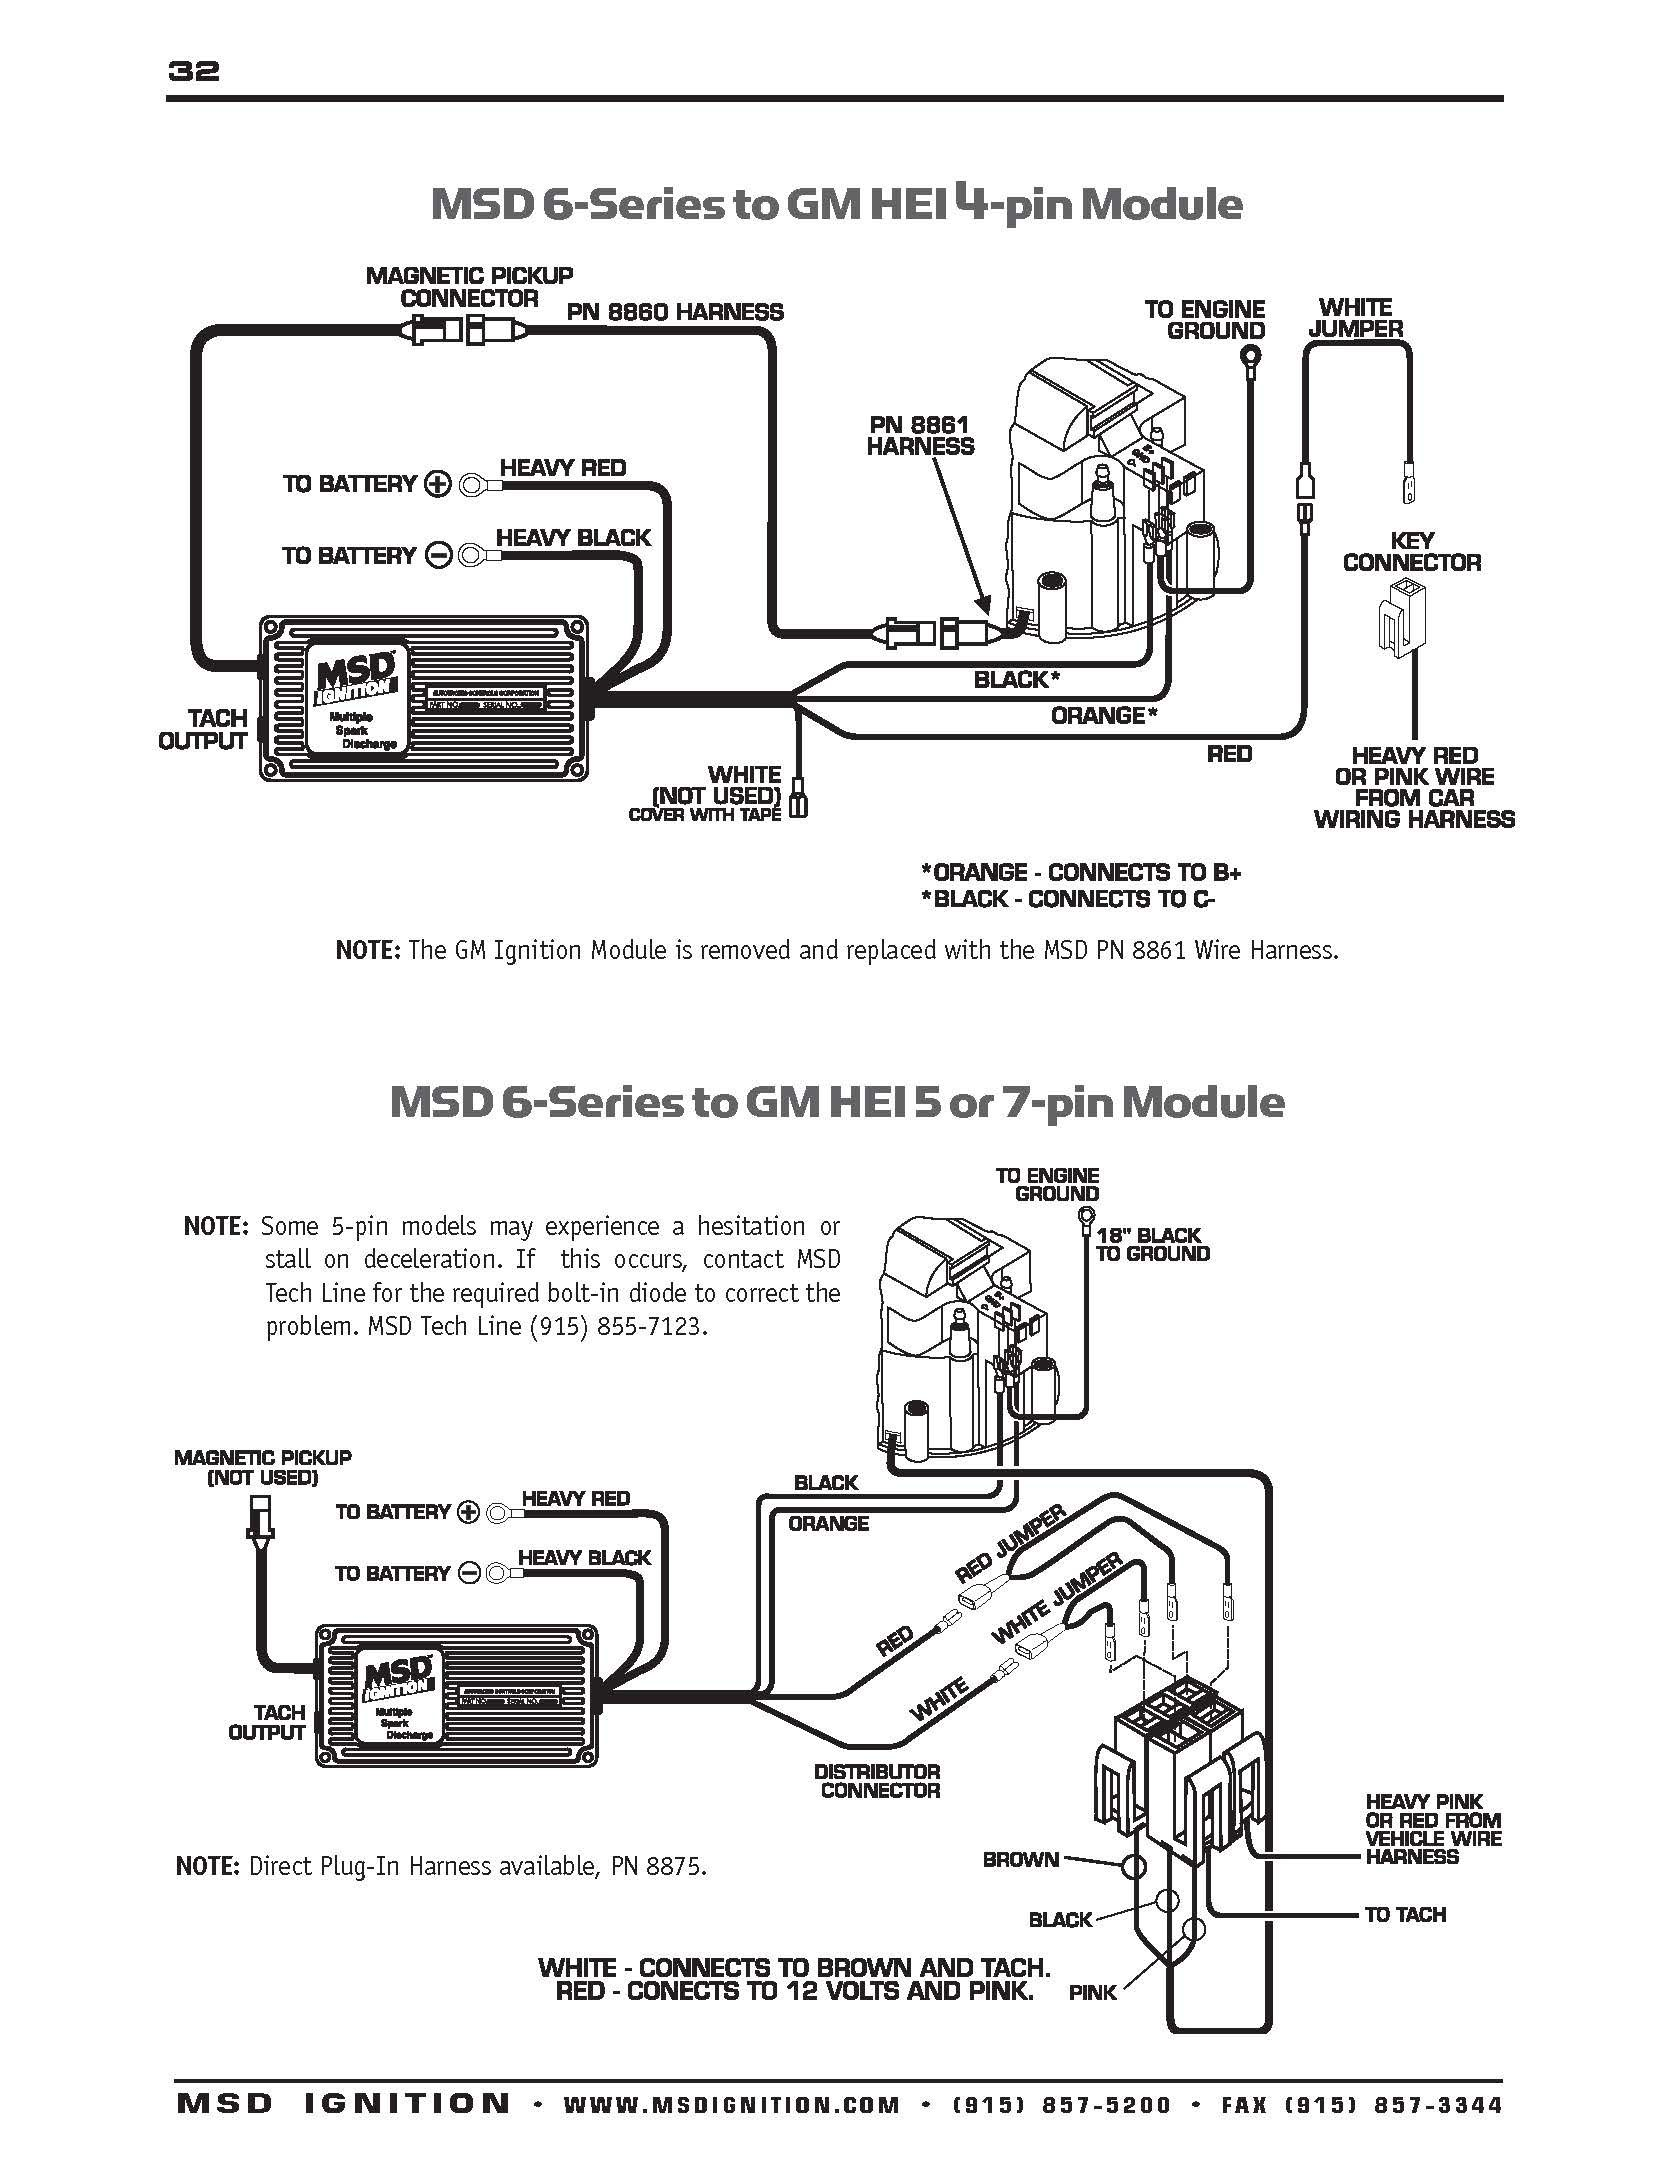 msd alternator wiring diagram wiring diagrams user Bosch Alternator Wiring Diagram